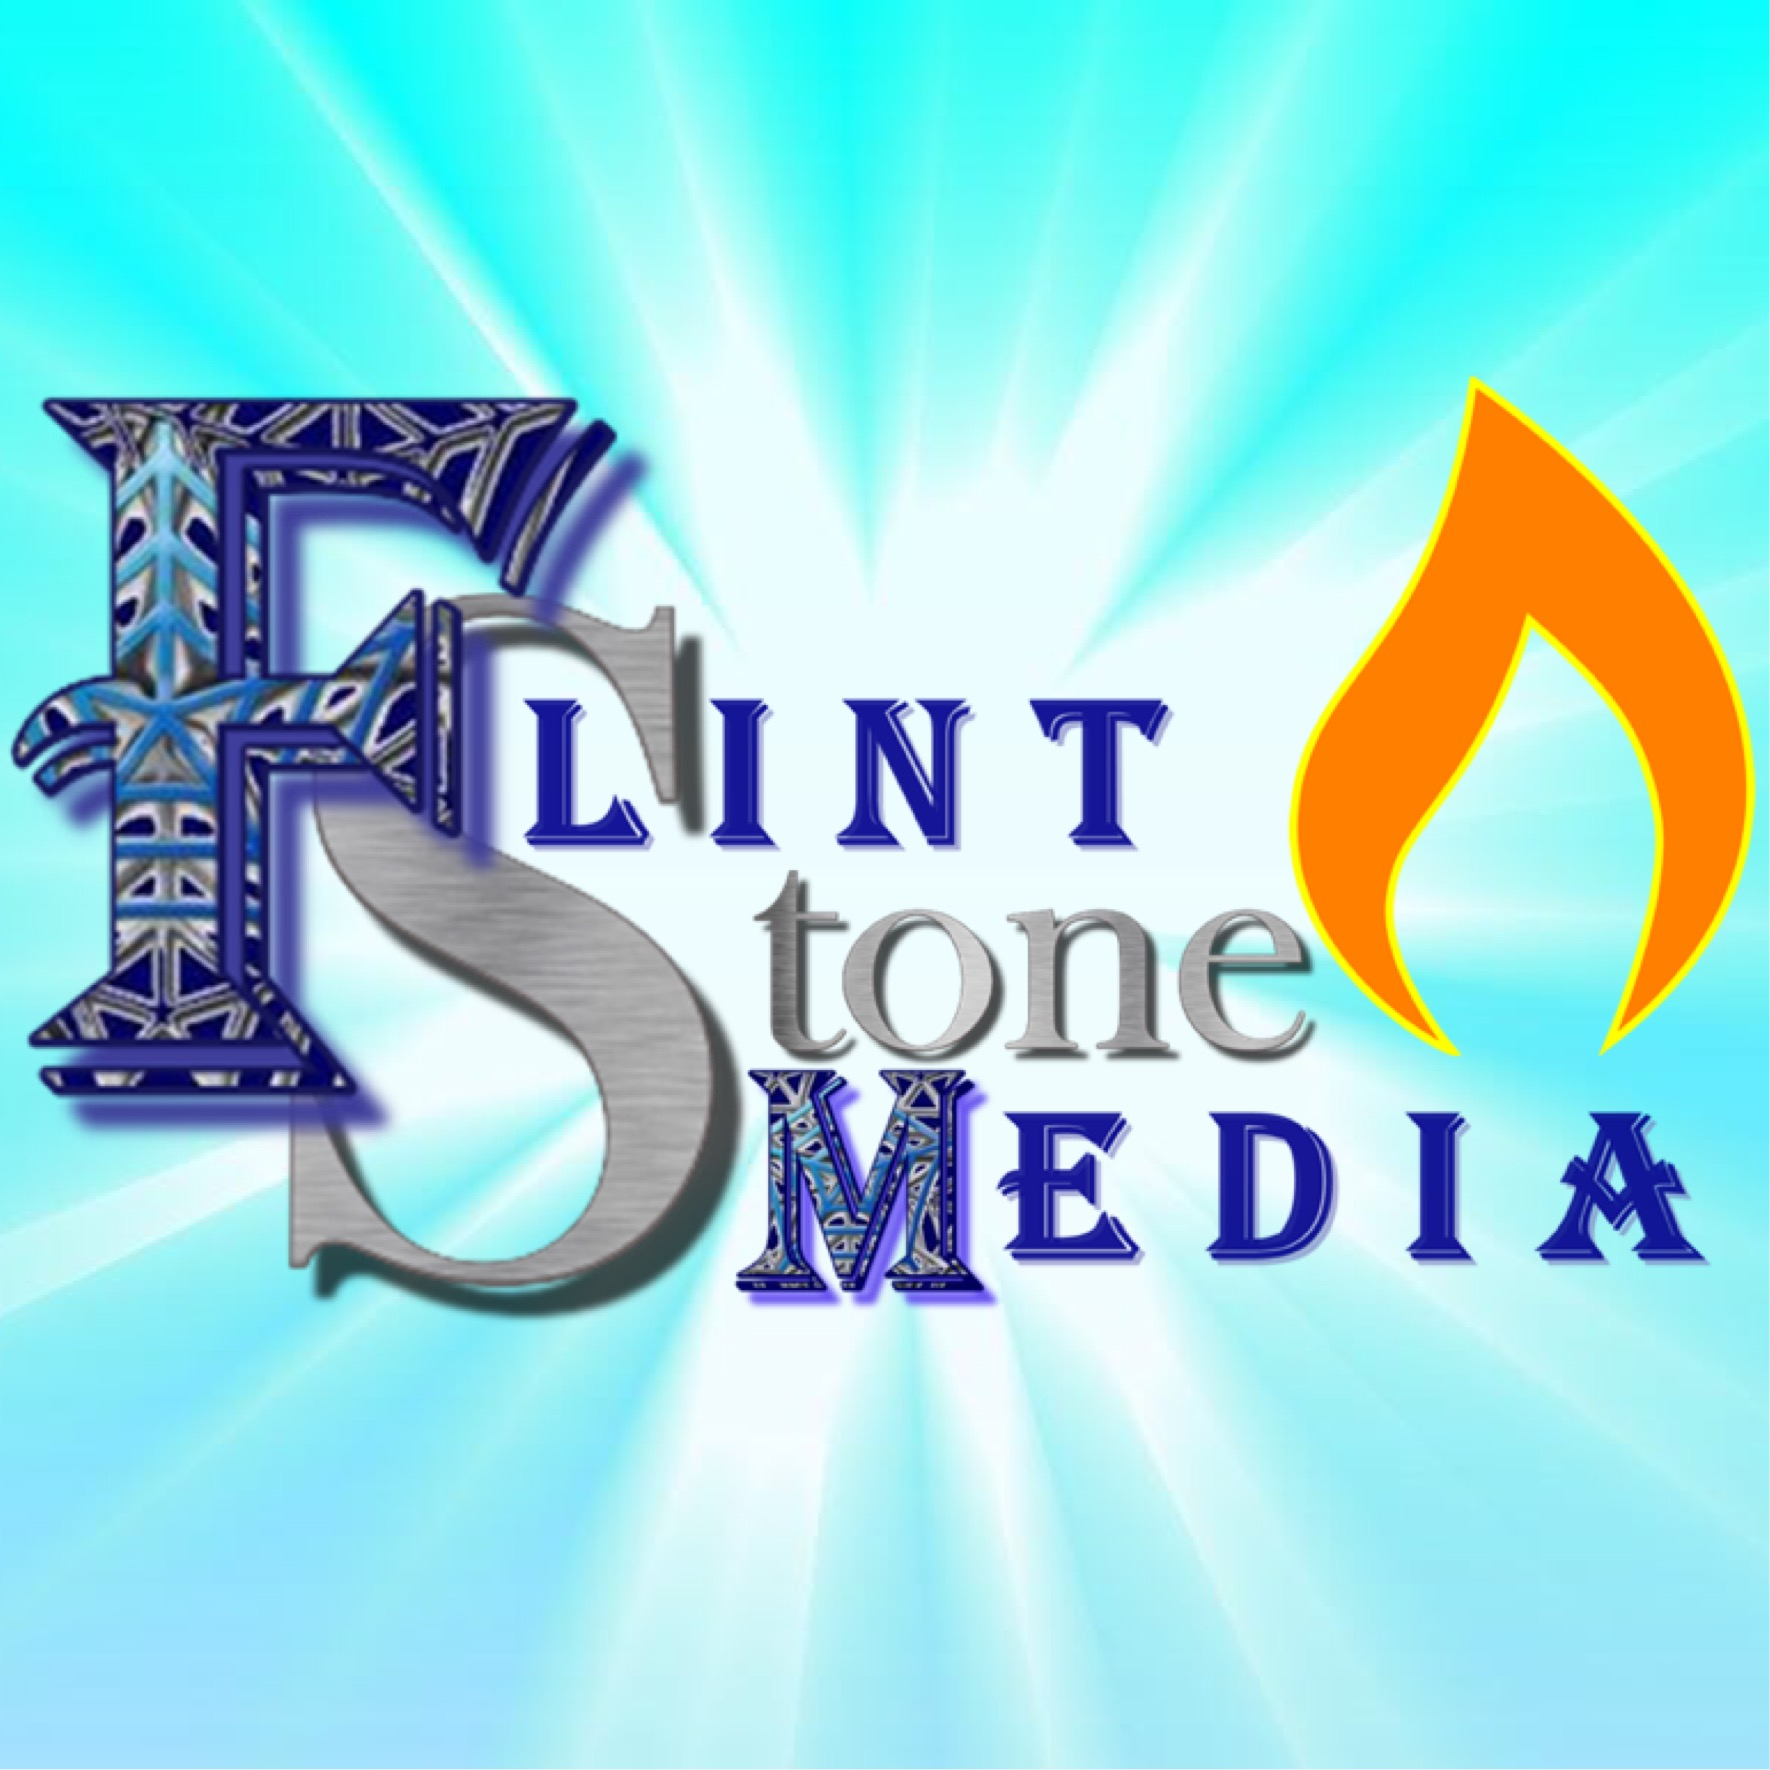 Ignite your digital platform!